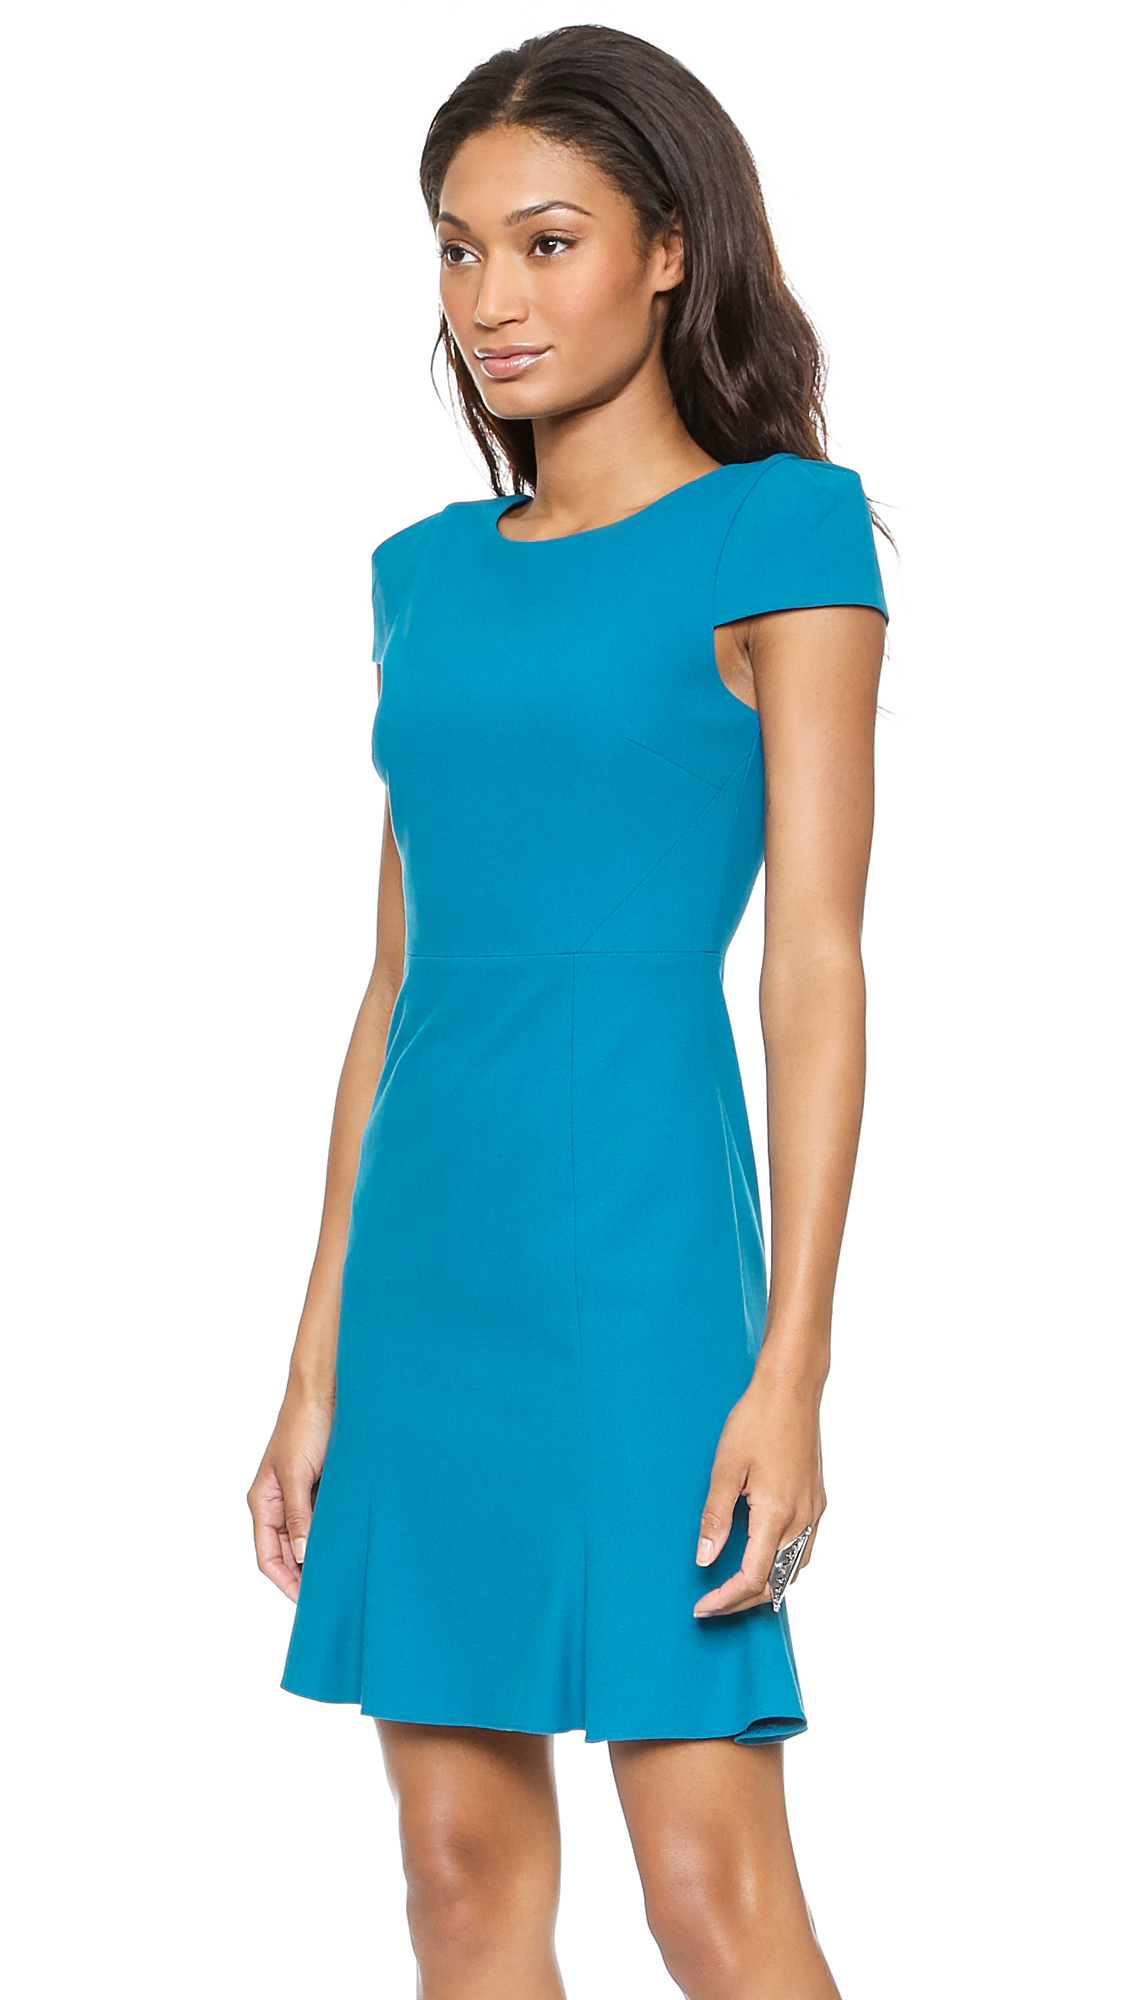 Blue capped sleeve dress